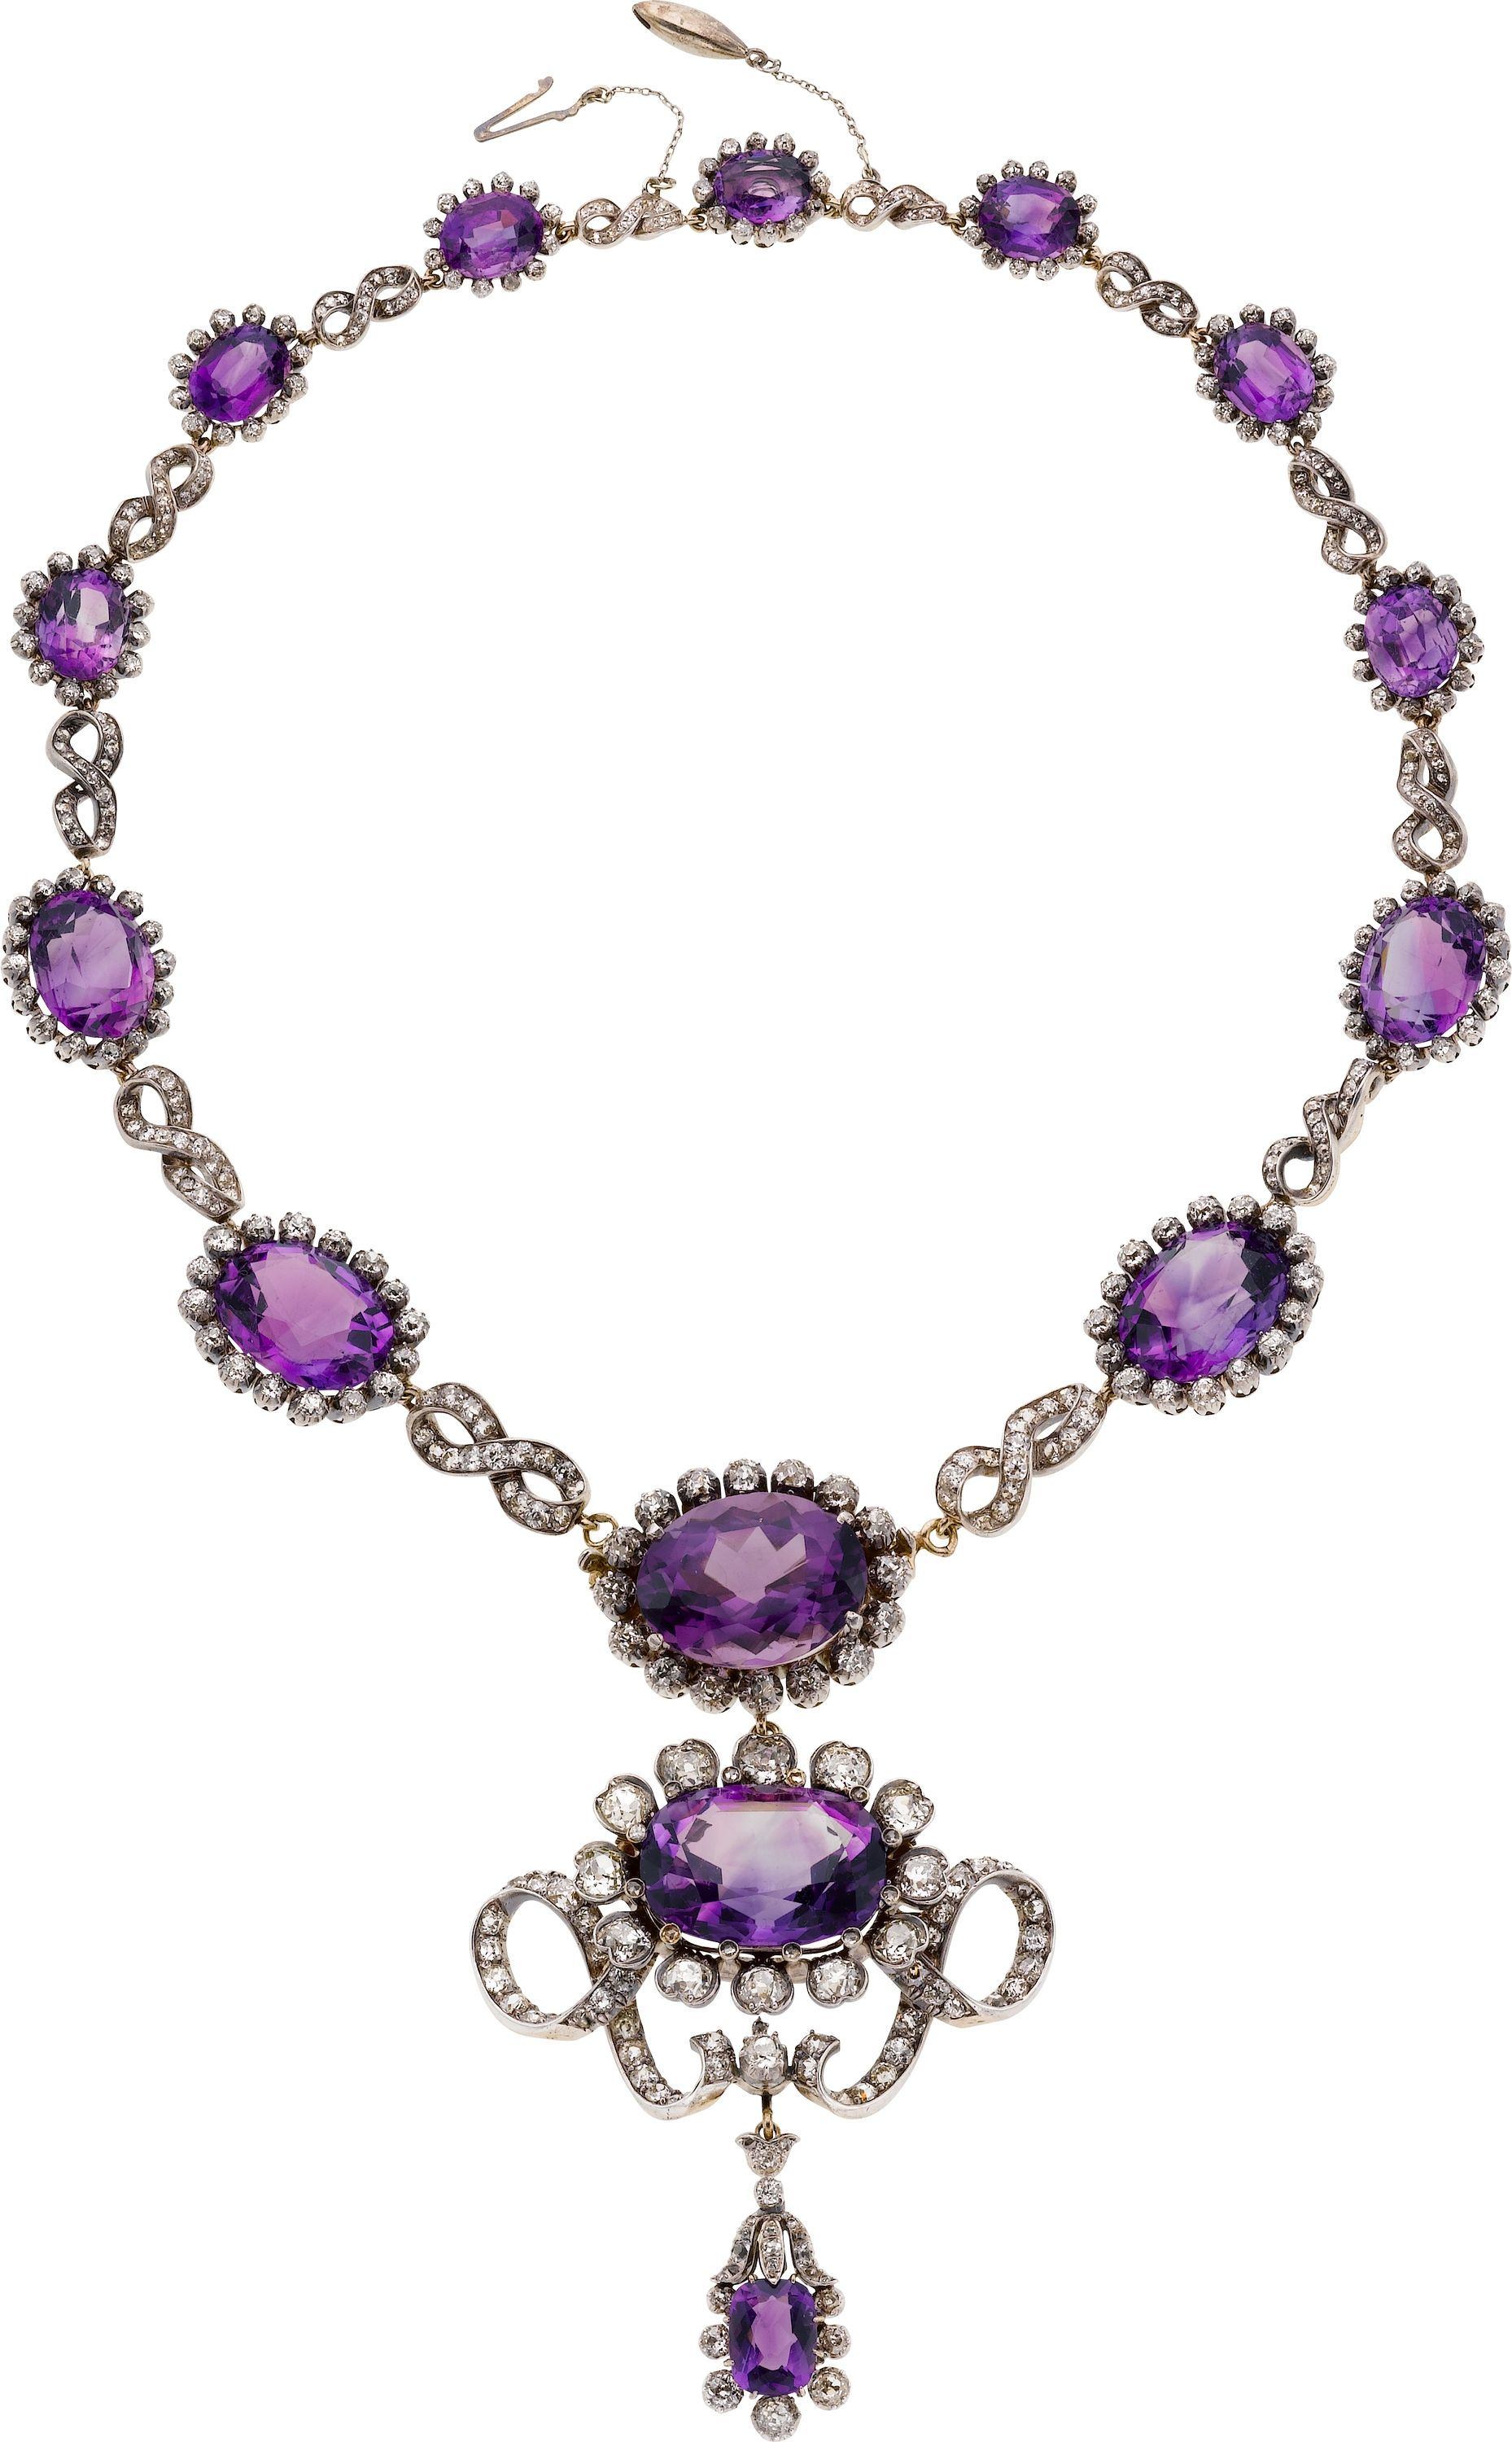 Victorian Amethyst, Diamond, Silver-Topped Gold Necklace, | Lot #58145 | Heritage Auctions